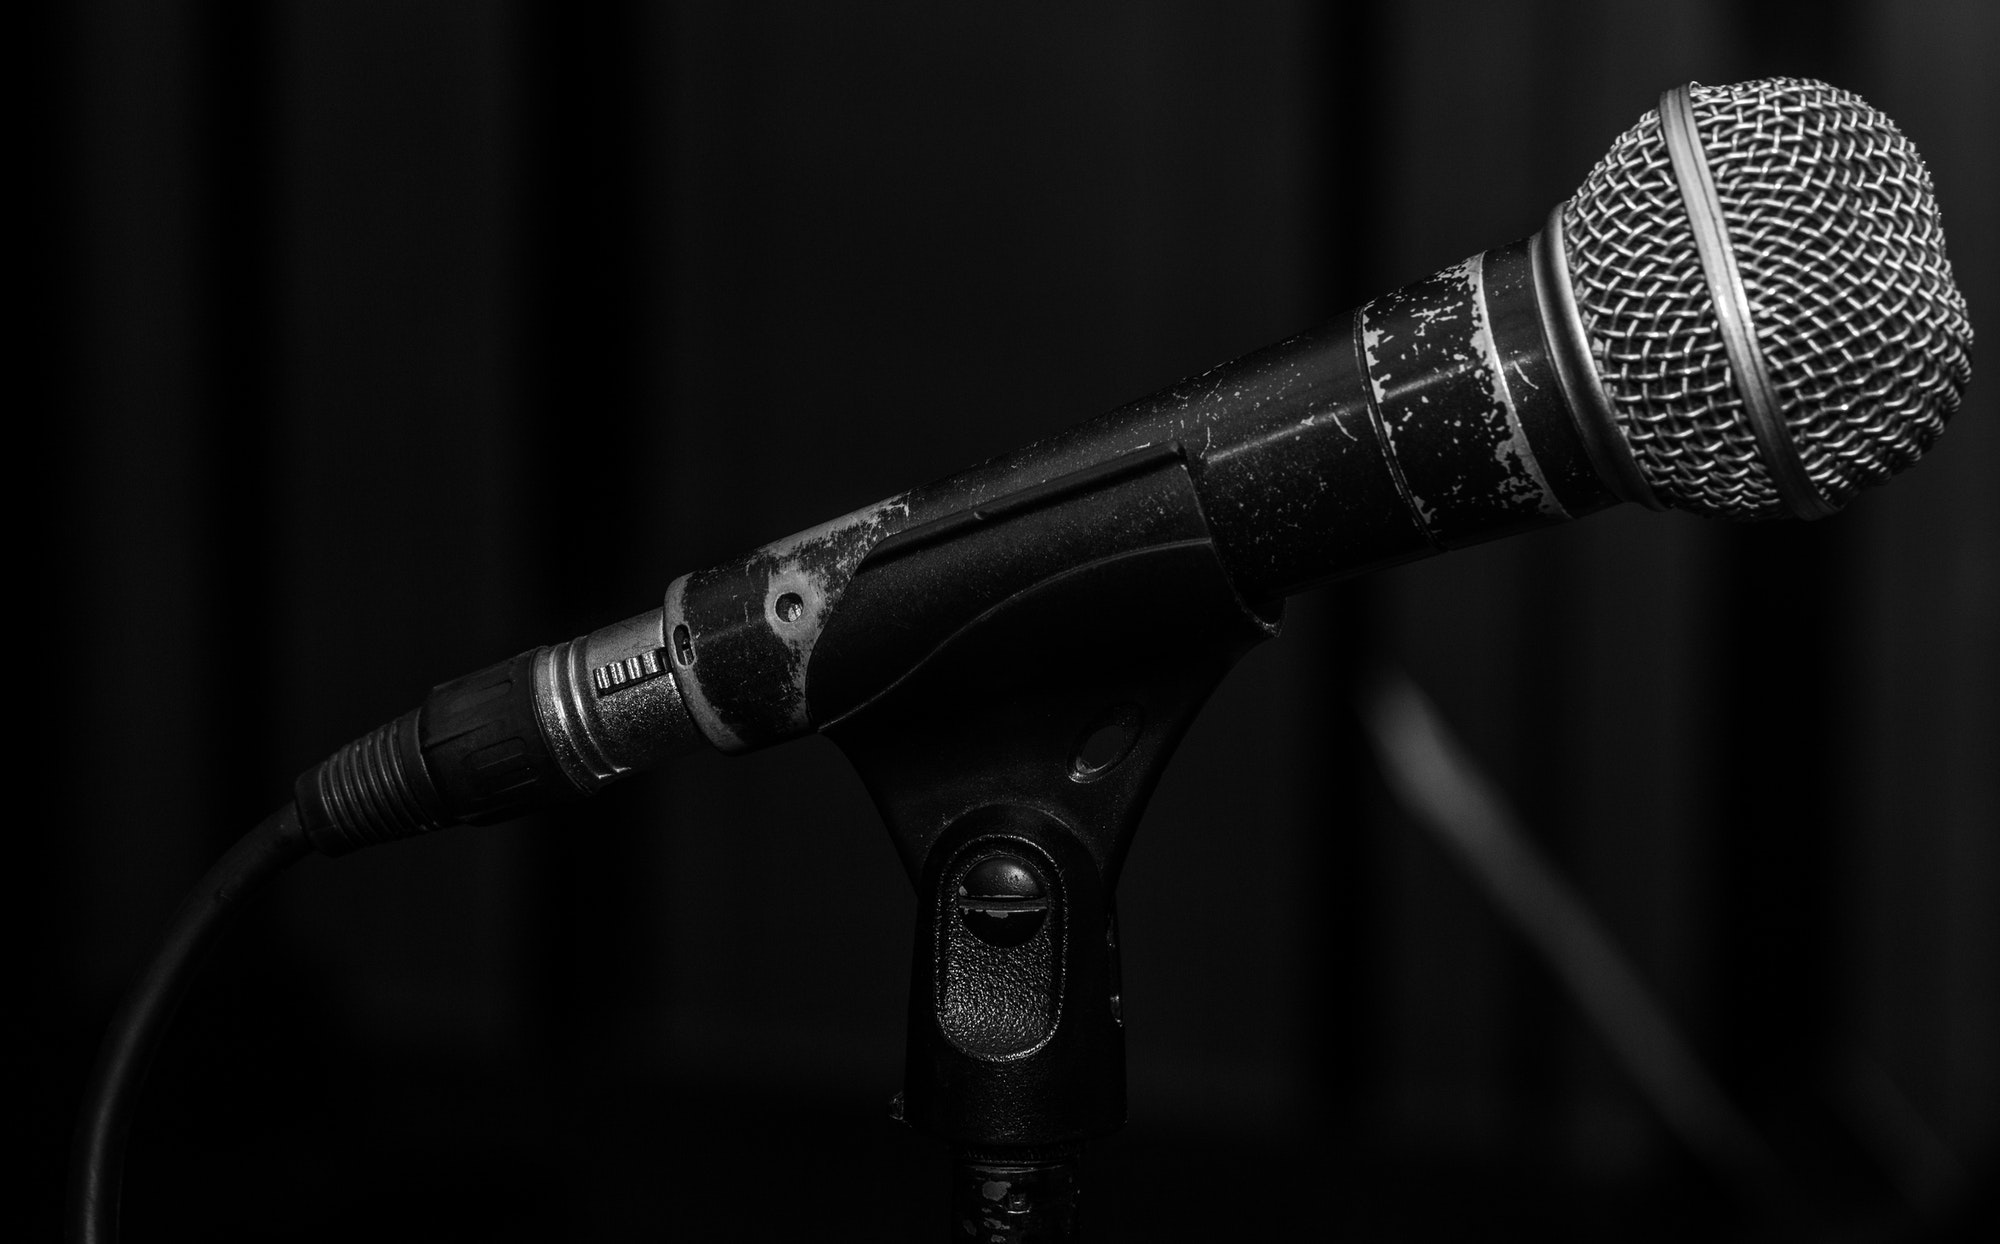 the old dynamic vocal microphone